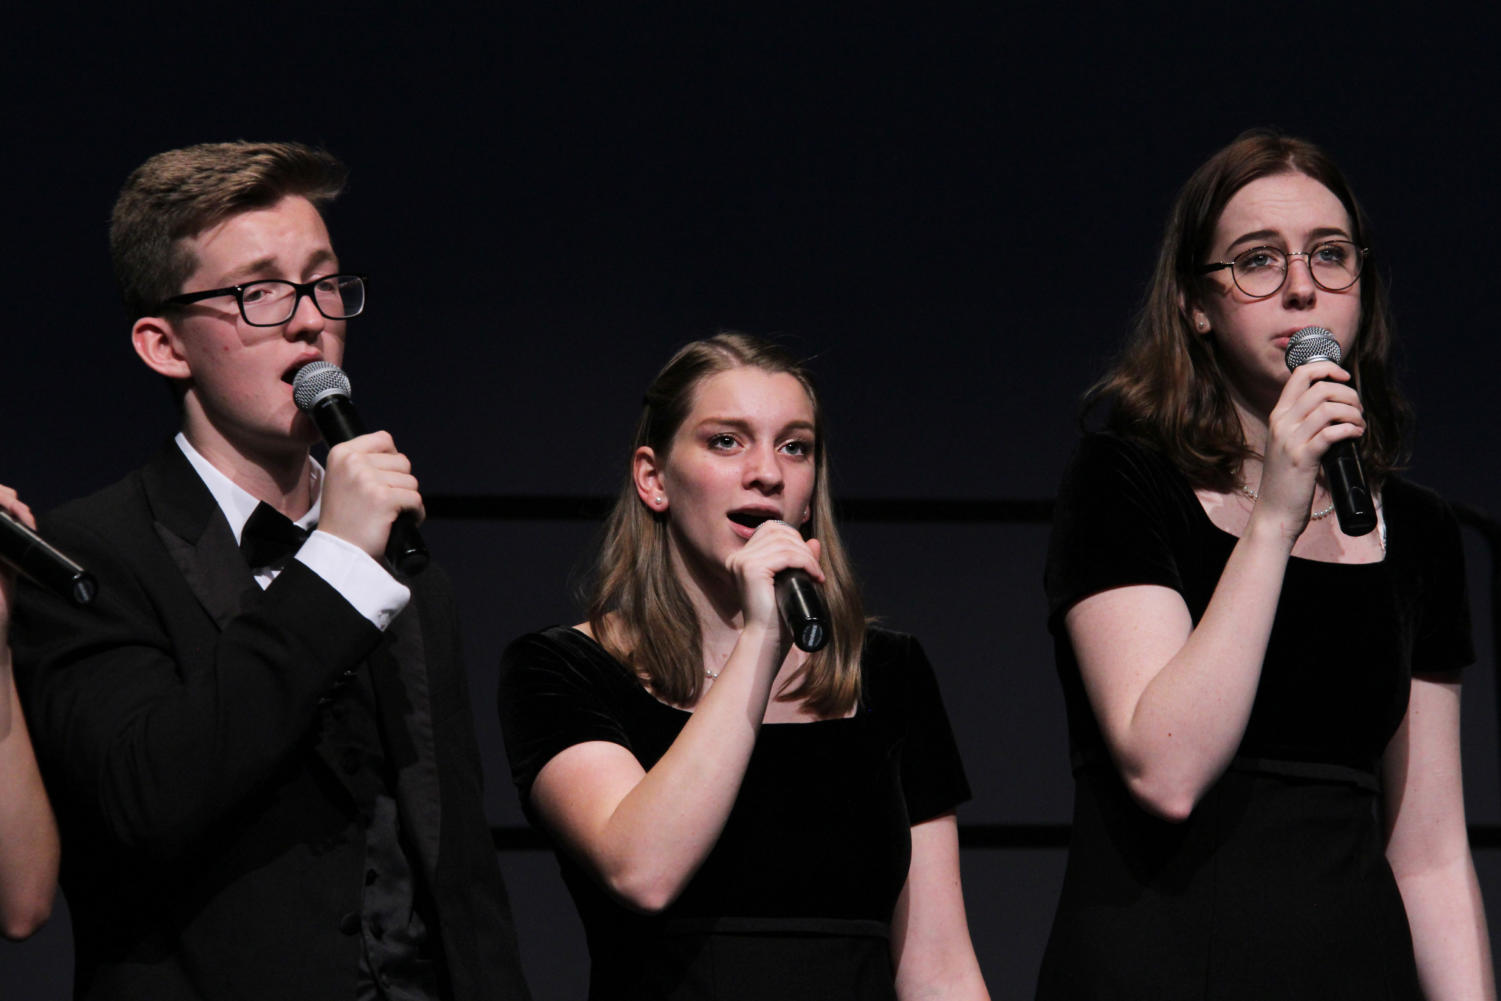 Senior Marcie Sawyers (center) sings with juniors Stephen Godfrey (left) and Claire McLaren (right) during a concert.